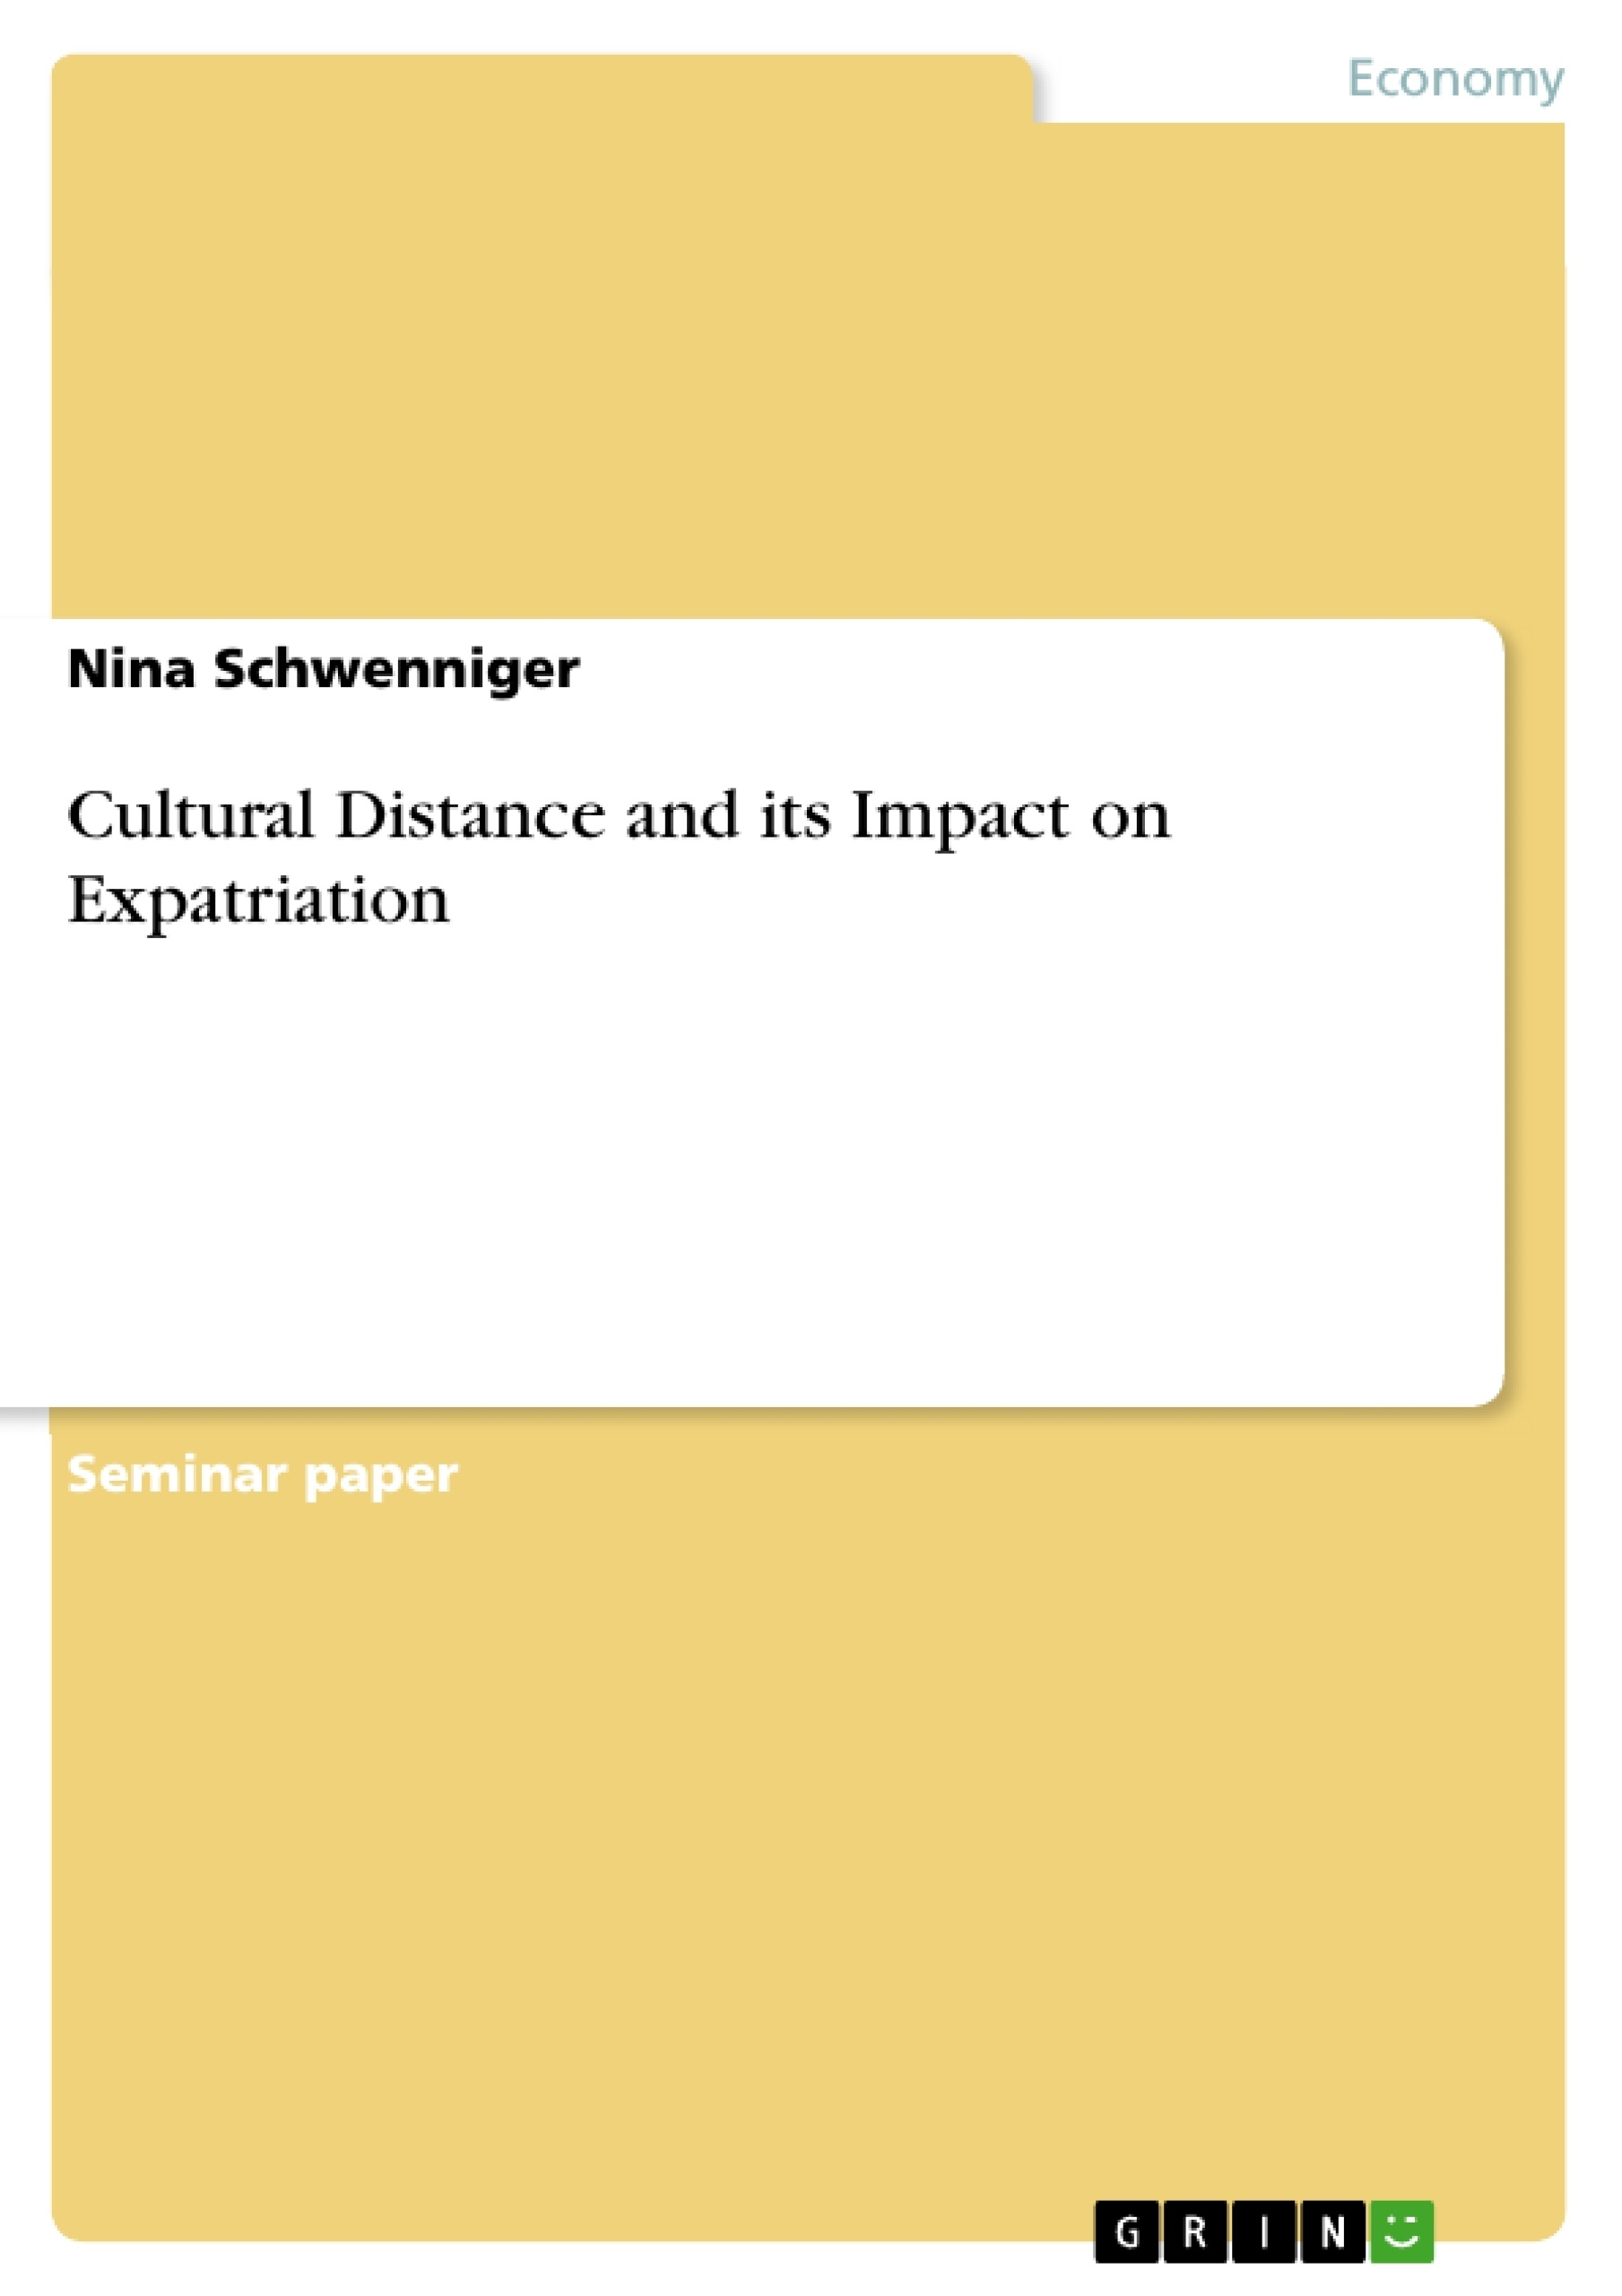 Title: Cultural Distance and its Impact on Expatriation